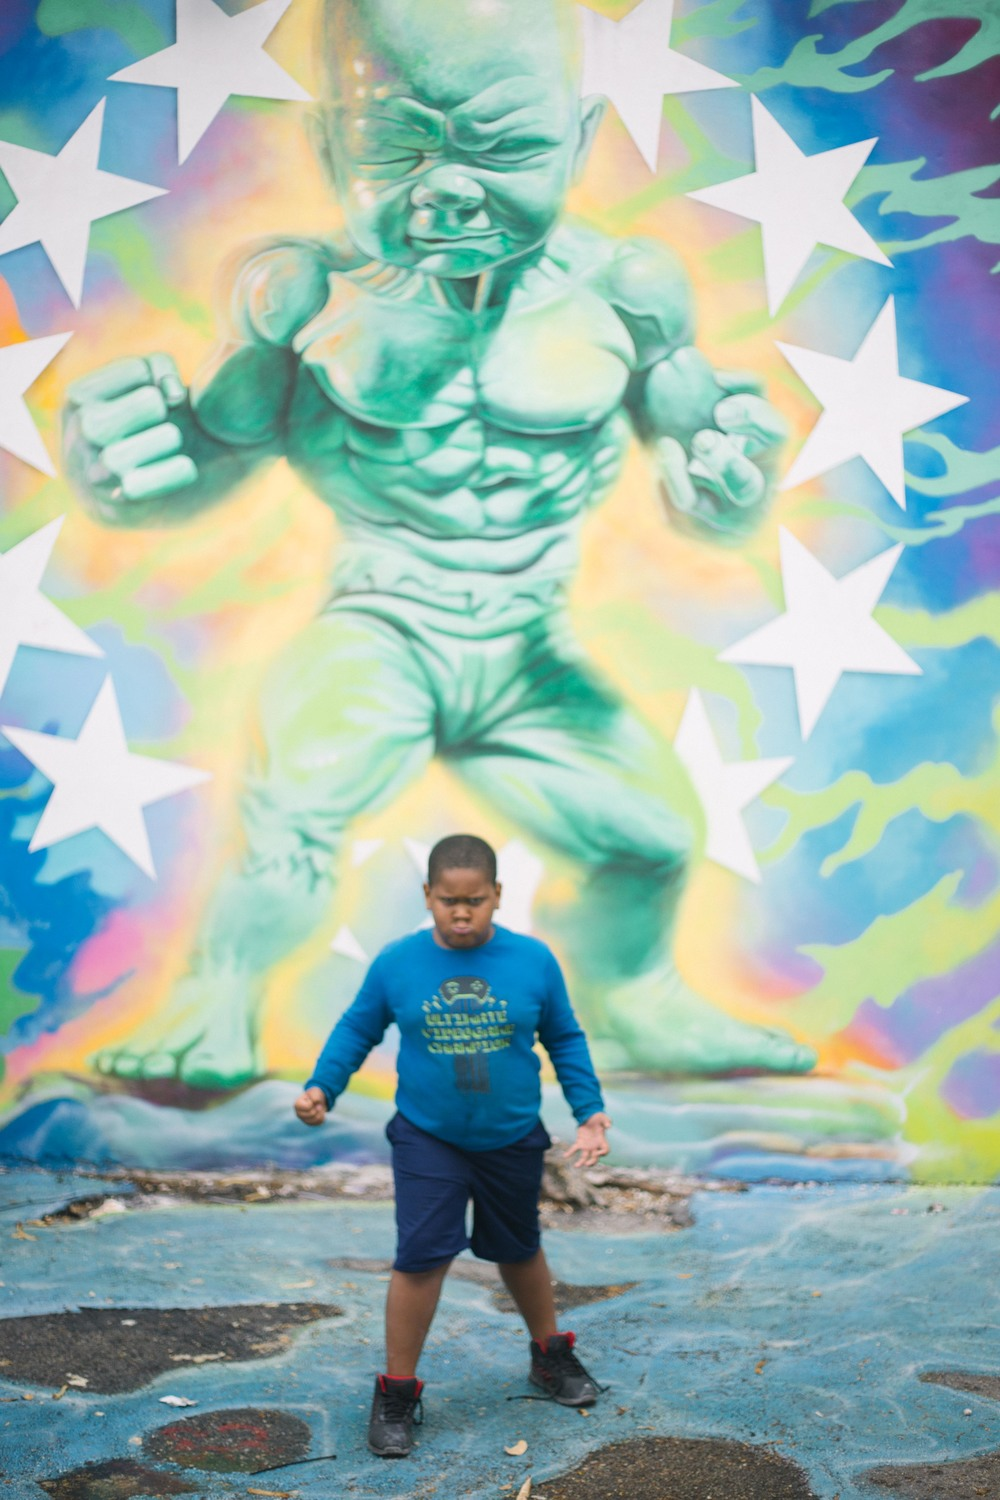 My one and only son aka The Hulk, if you ask him.